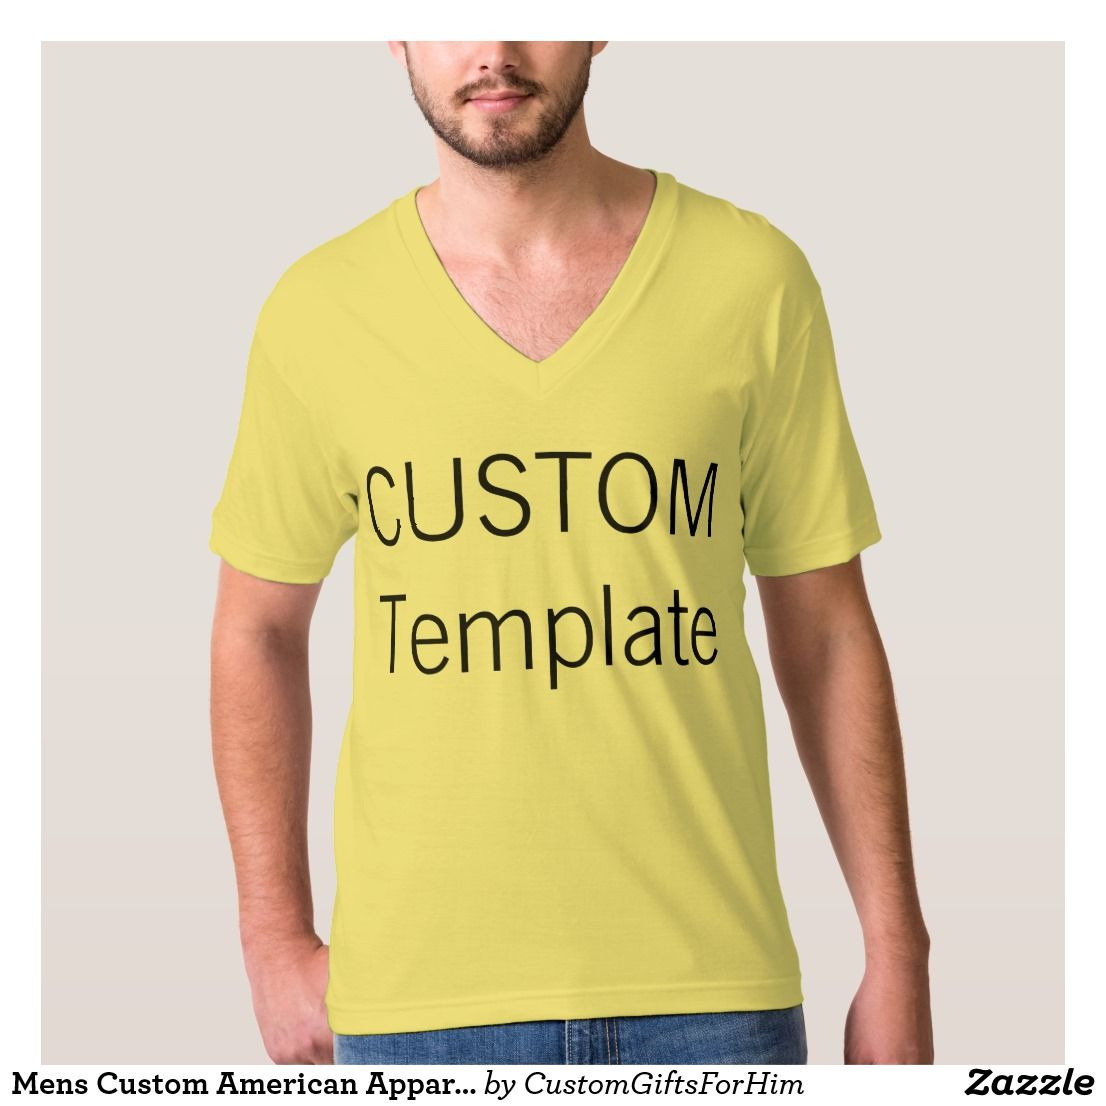 Cute 1 Week Schedule Template Small 18th Invitation Templates Rectangular 2 Fold Brochure Template 2 Page Resume Design Young 2 Page Resume Format For Experienced Soft2 Page Resume Sample Mens Custom American Apparel V Neck T Shirt YELLOW | Custom ..